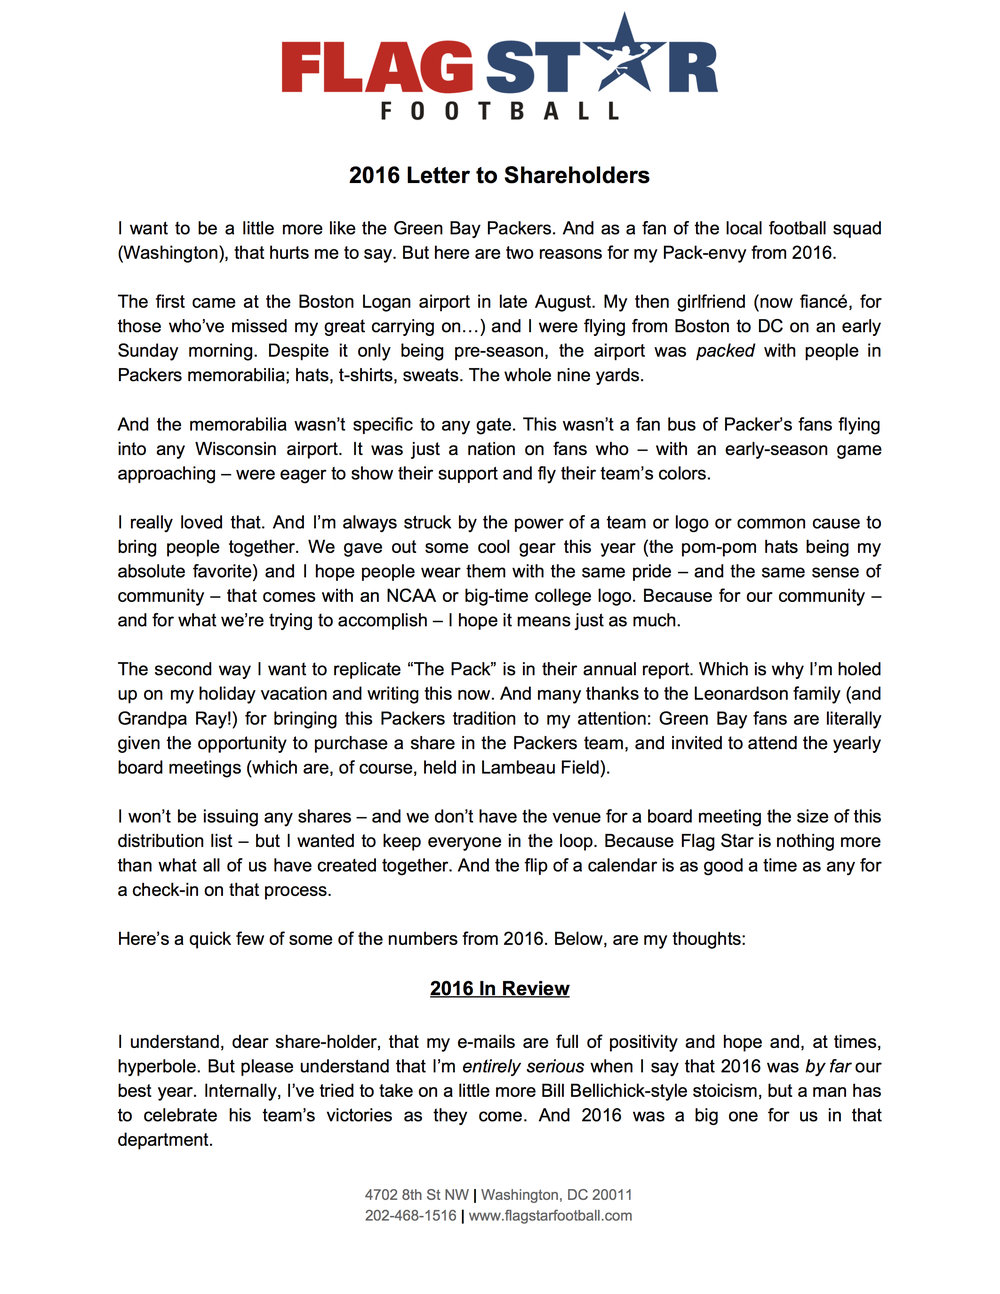 2016 Letter to Sharholders p1.jpg